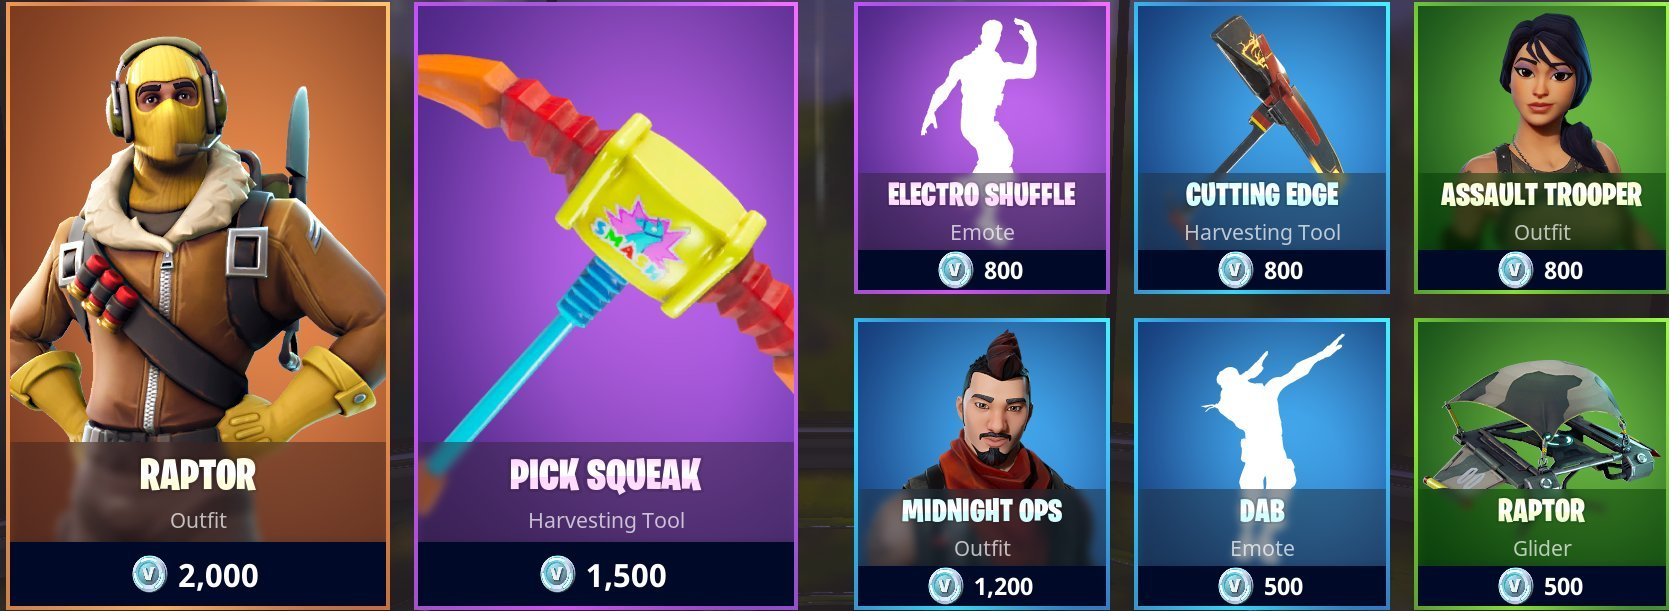 Fortnite Item Shop - Featured and Daily Items | Fortnite ...